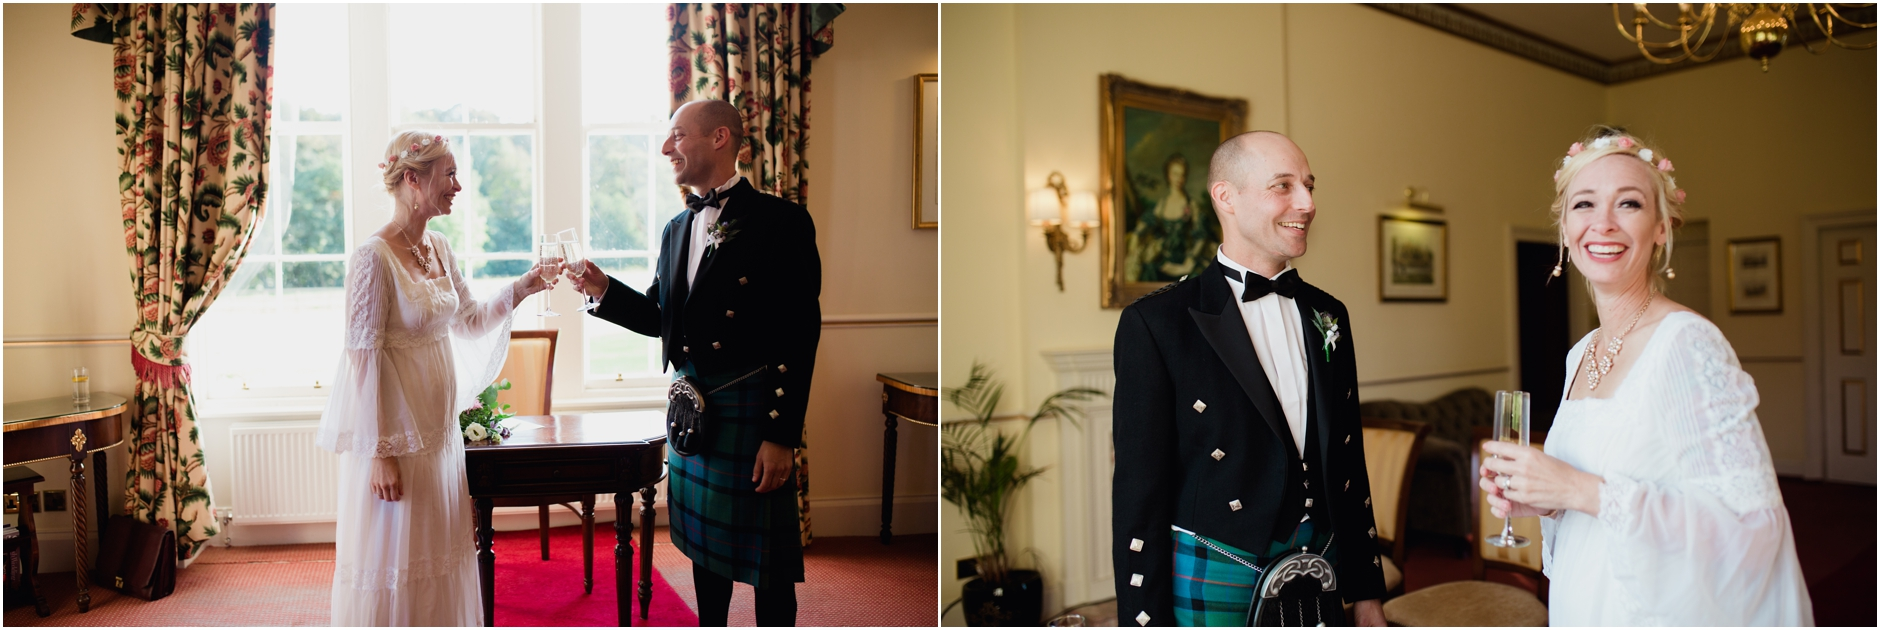 bride and groom on their scottish castle elopement